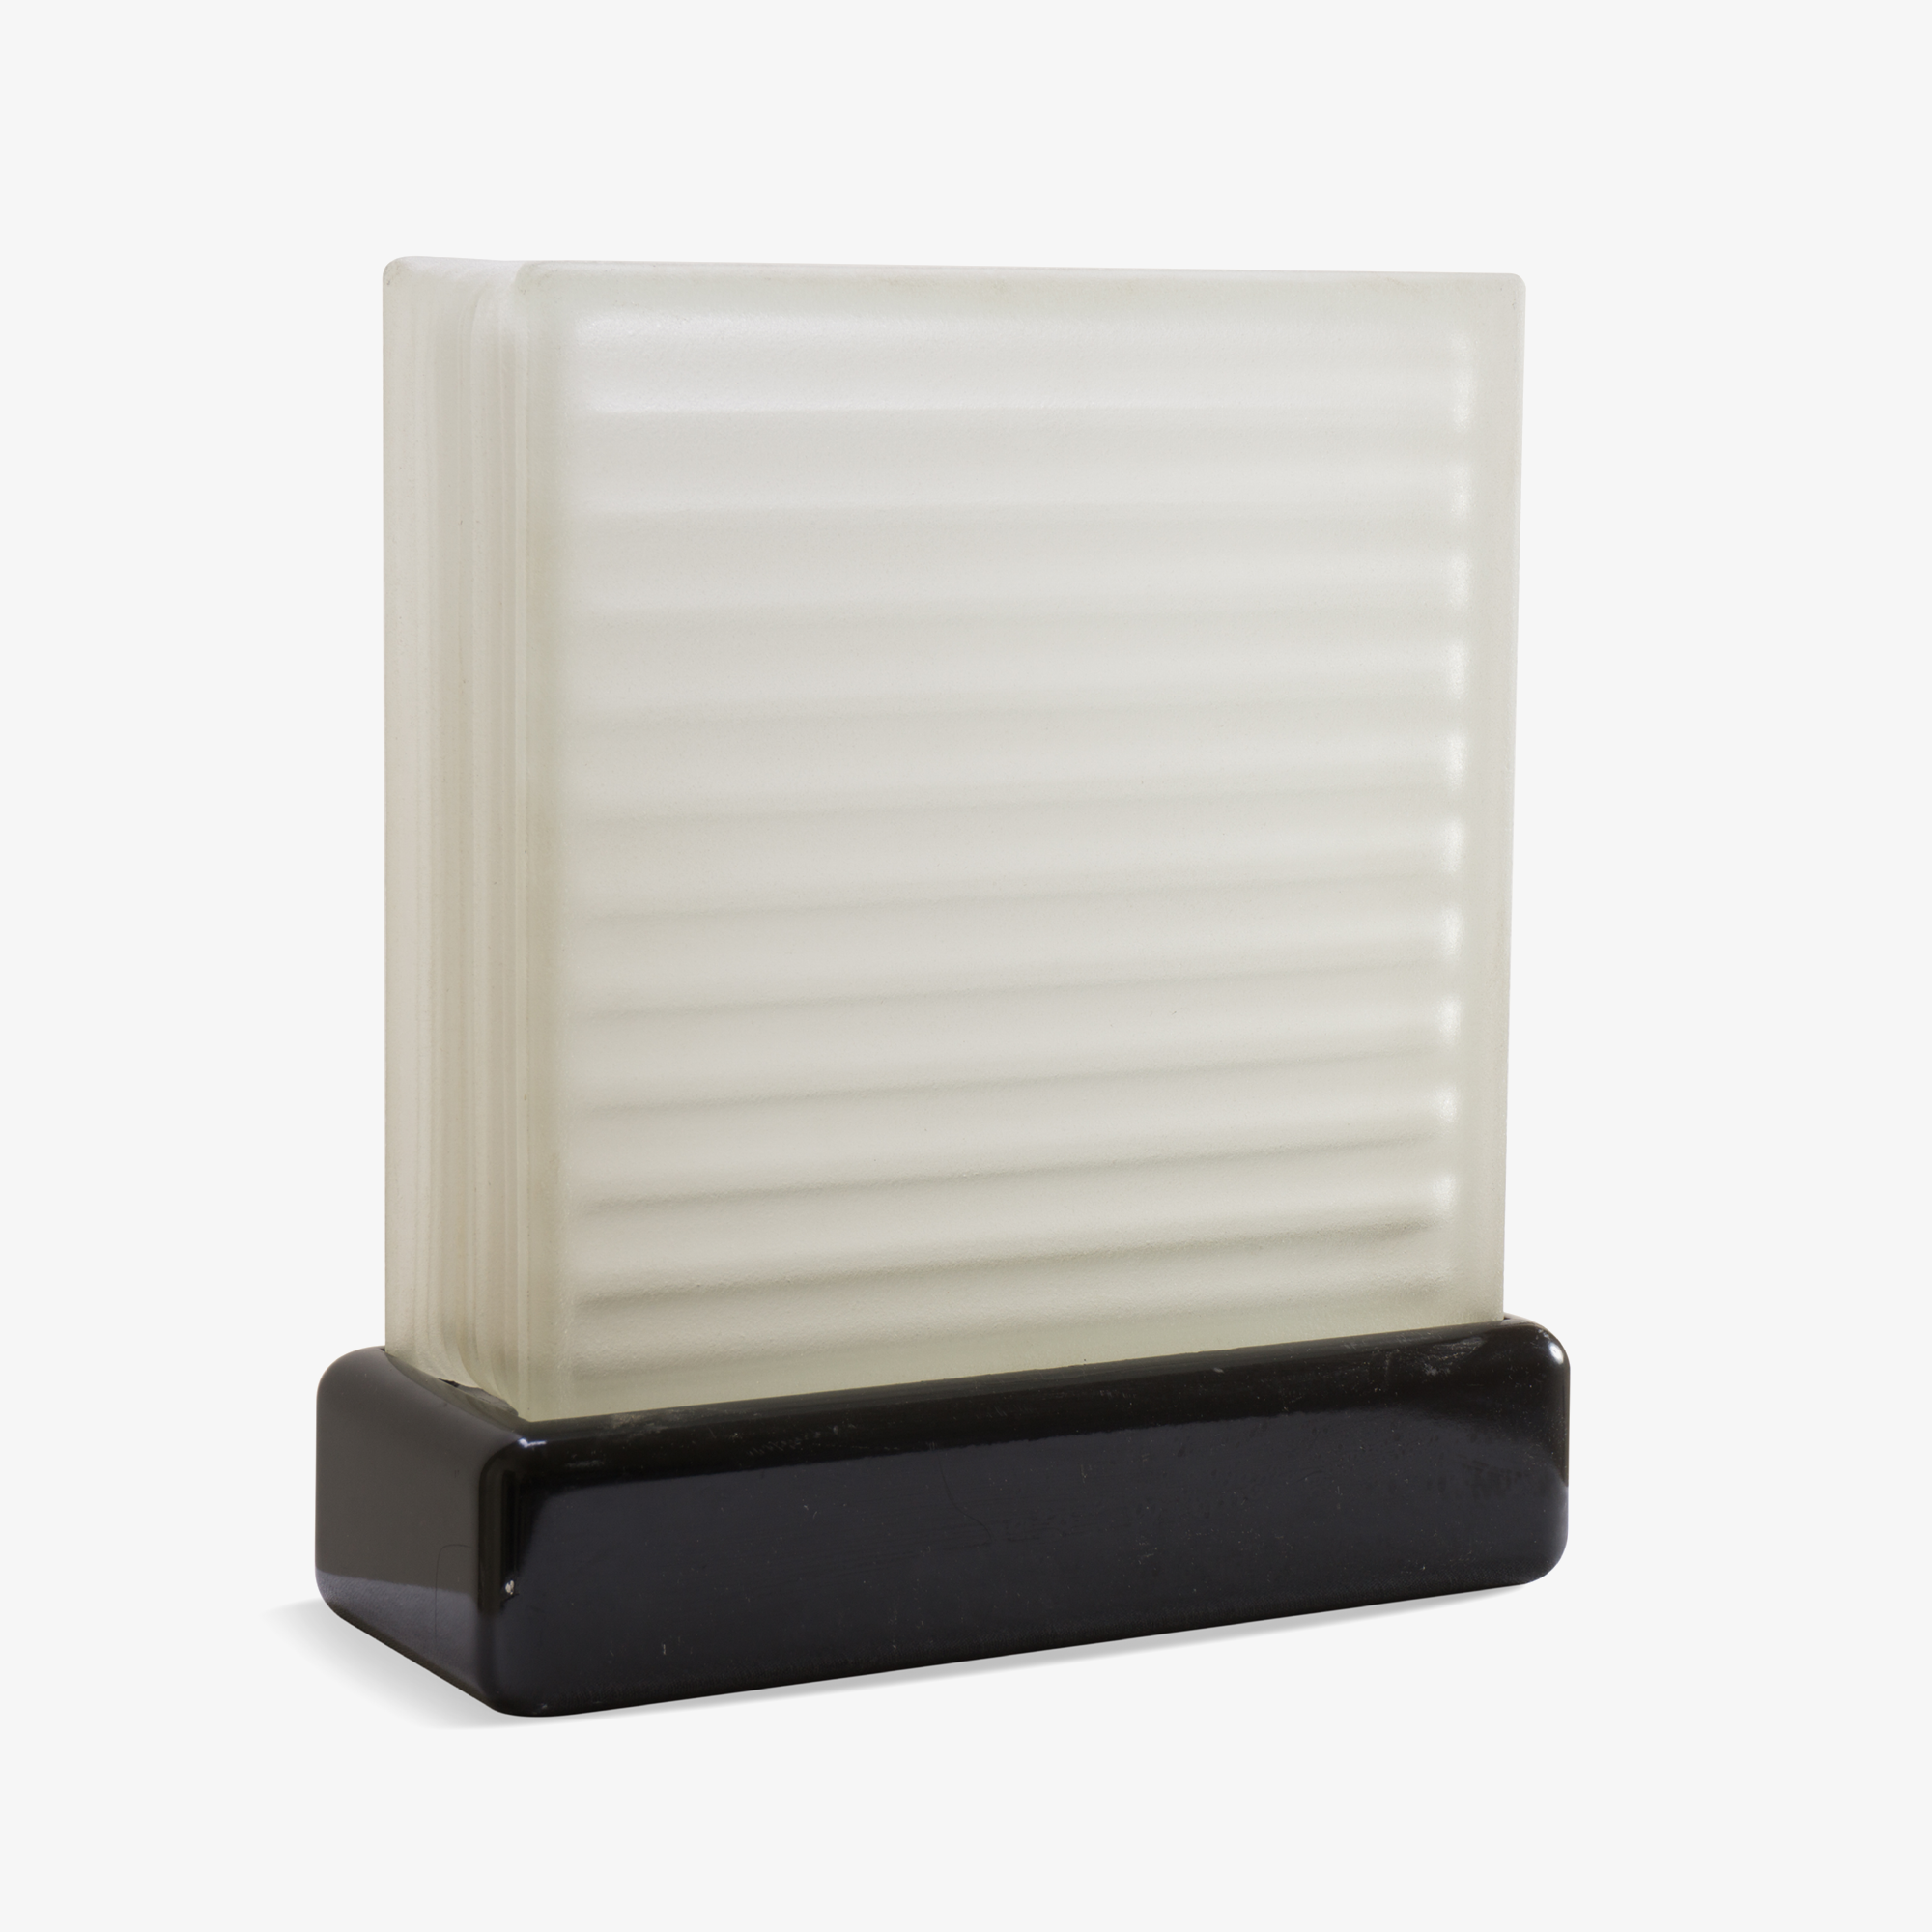 Art-Deco Frosted Glass Accent Light